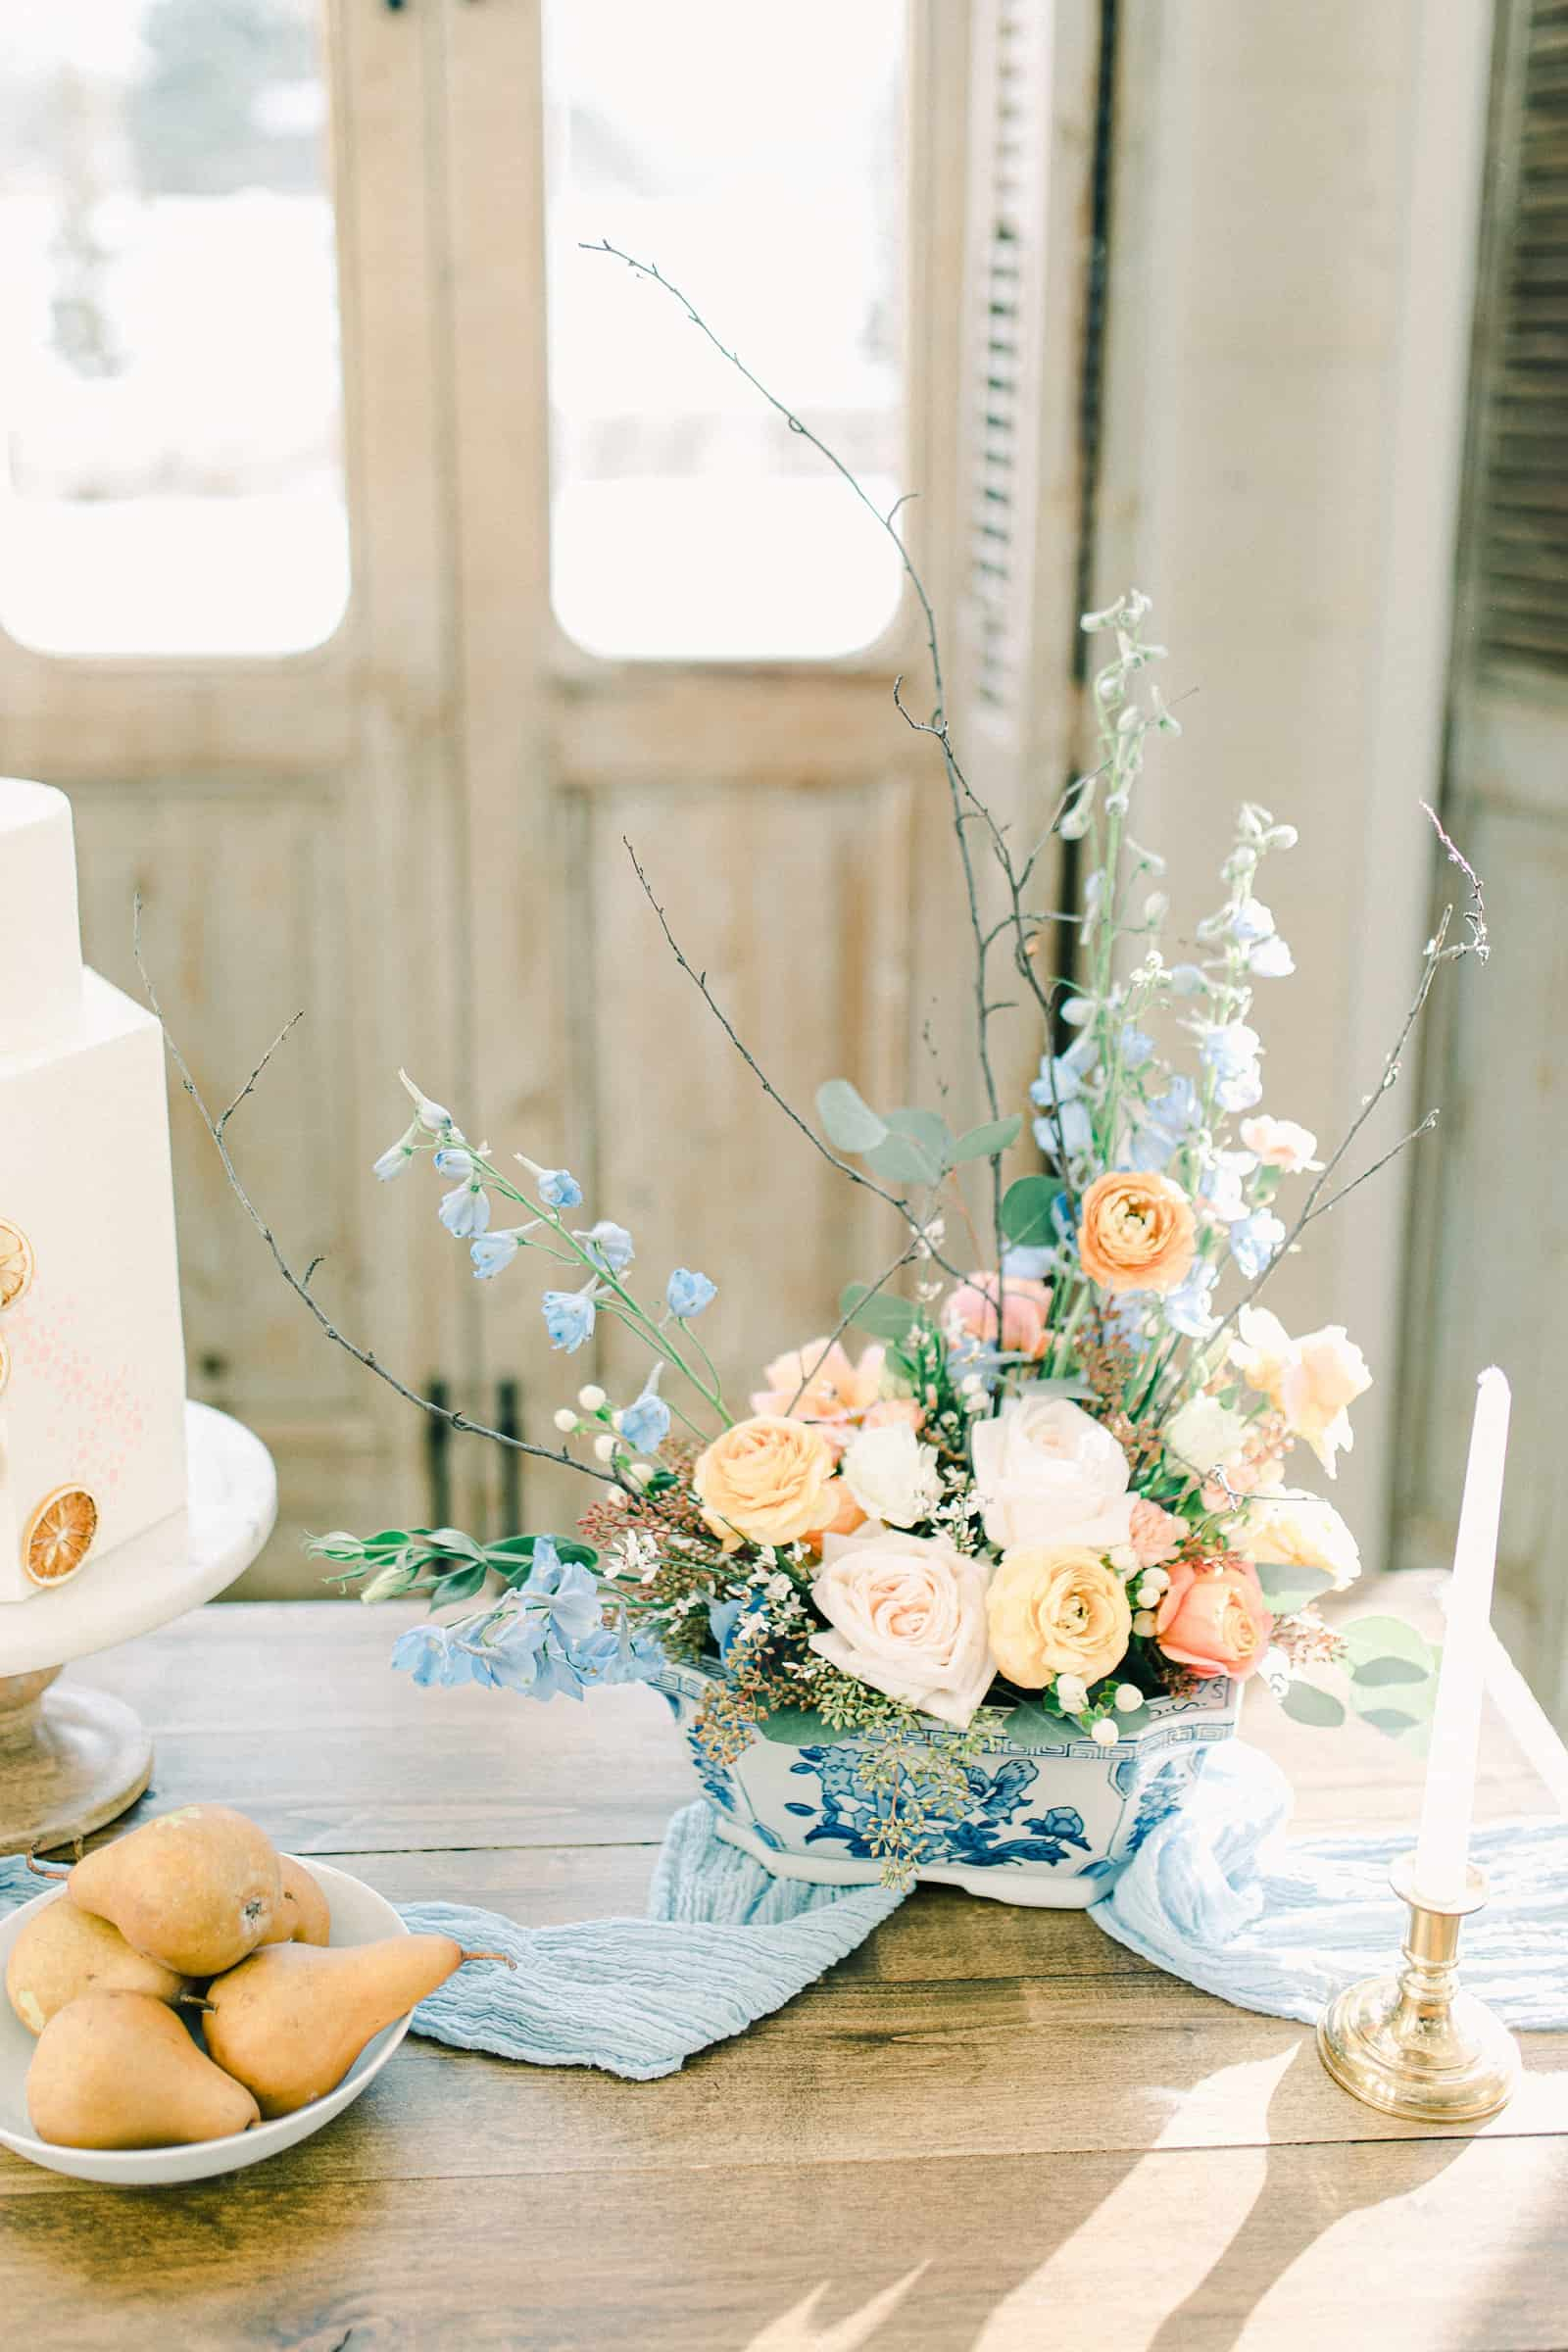 Wedding flowers, florist centerpiece, pastel wedding colors, light blue table runner, white buttercream wedding cake